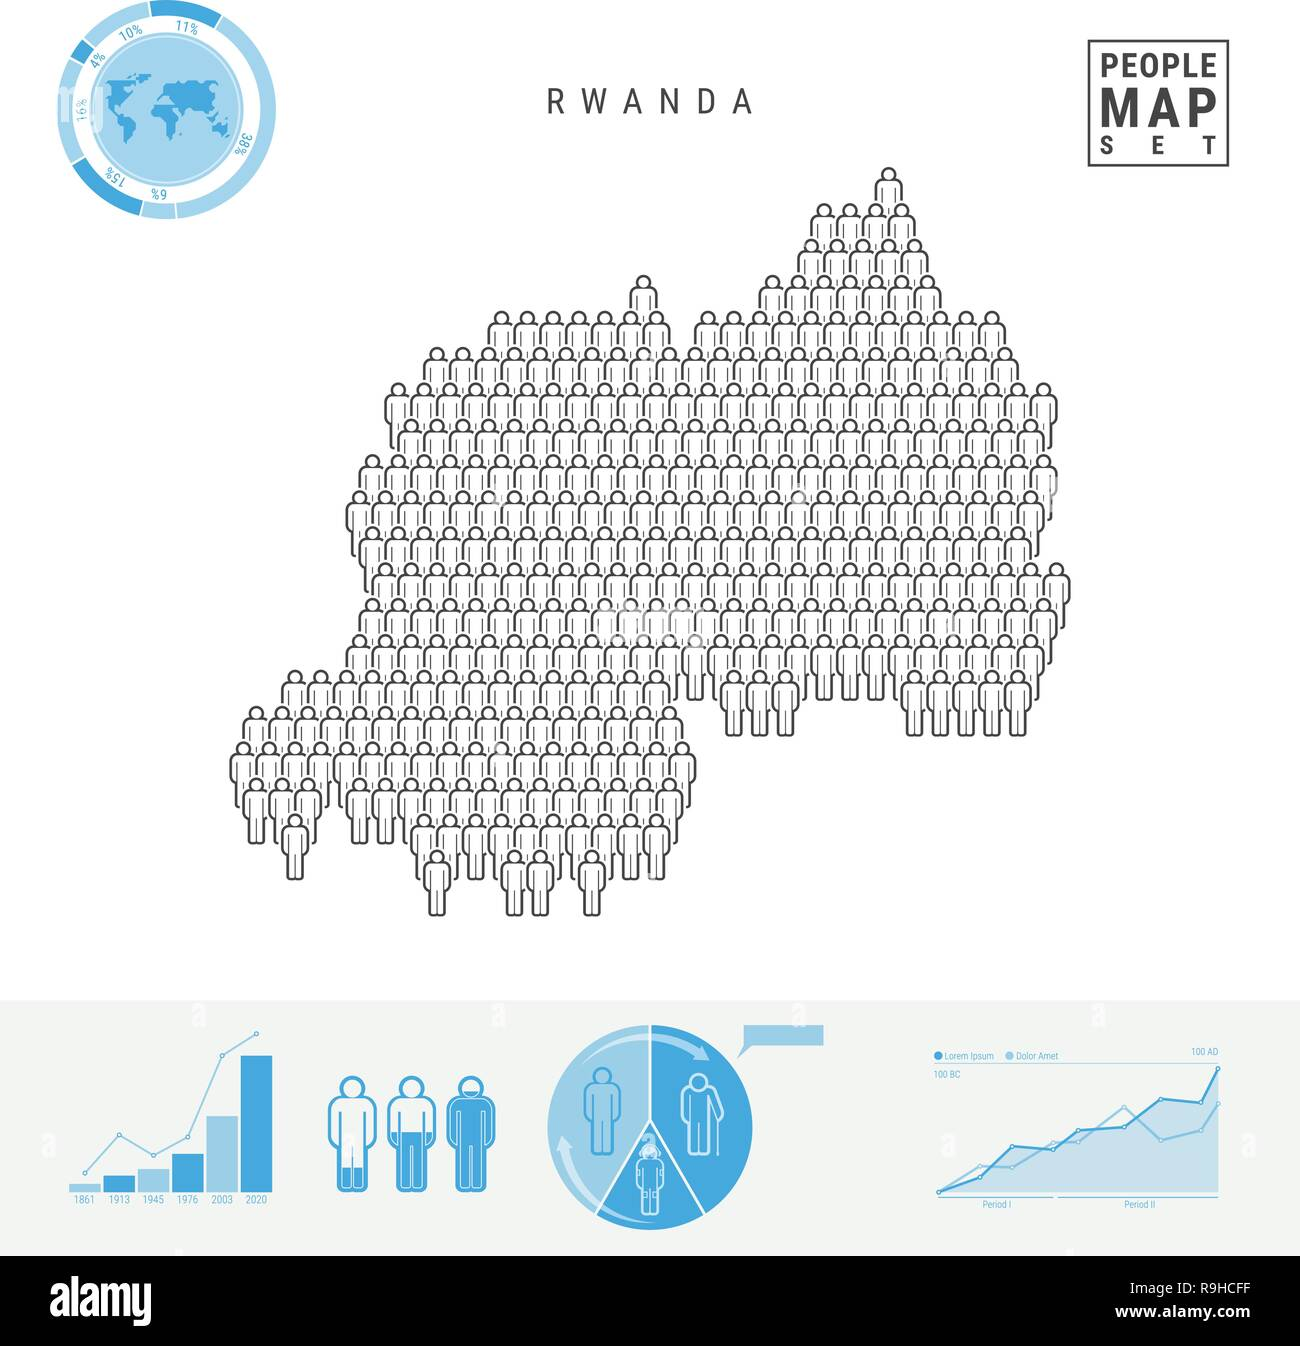 Rwanda People Icon Map. People Crowd in the Shape of a Map of Rwanda. Stylized Silhouette of Rwanda. Population Growth and Aging Infographic Elements. - Stock Vector